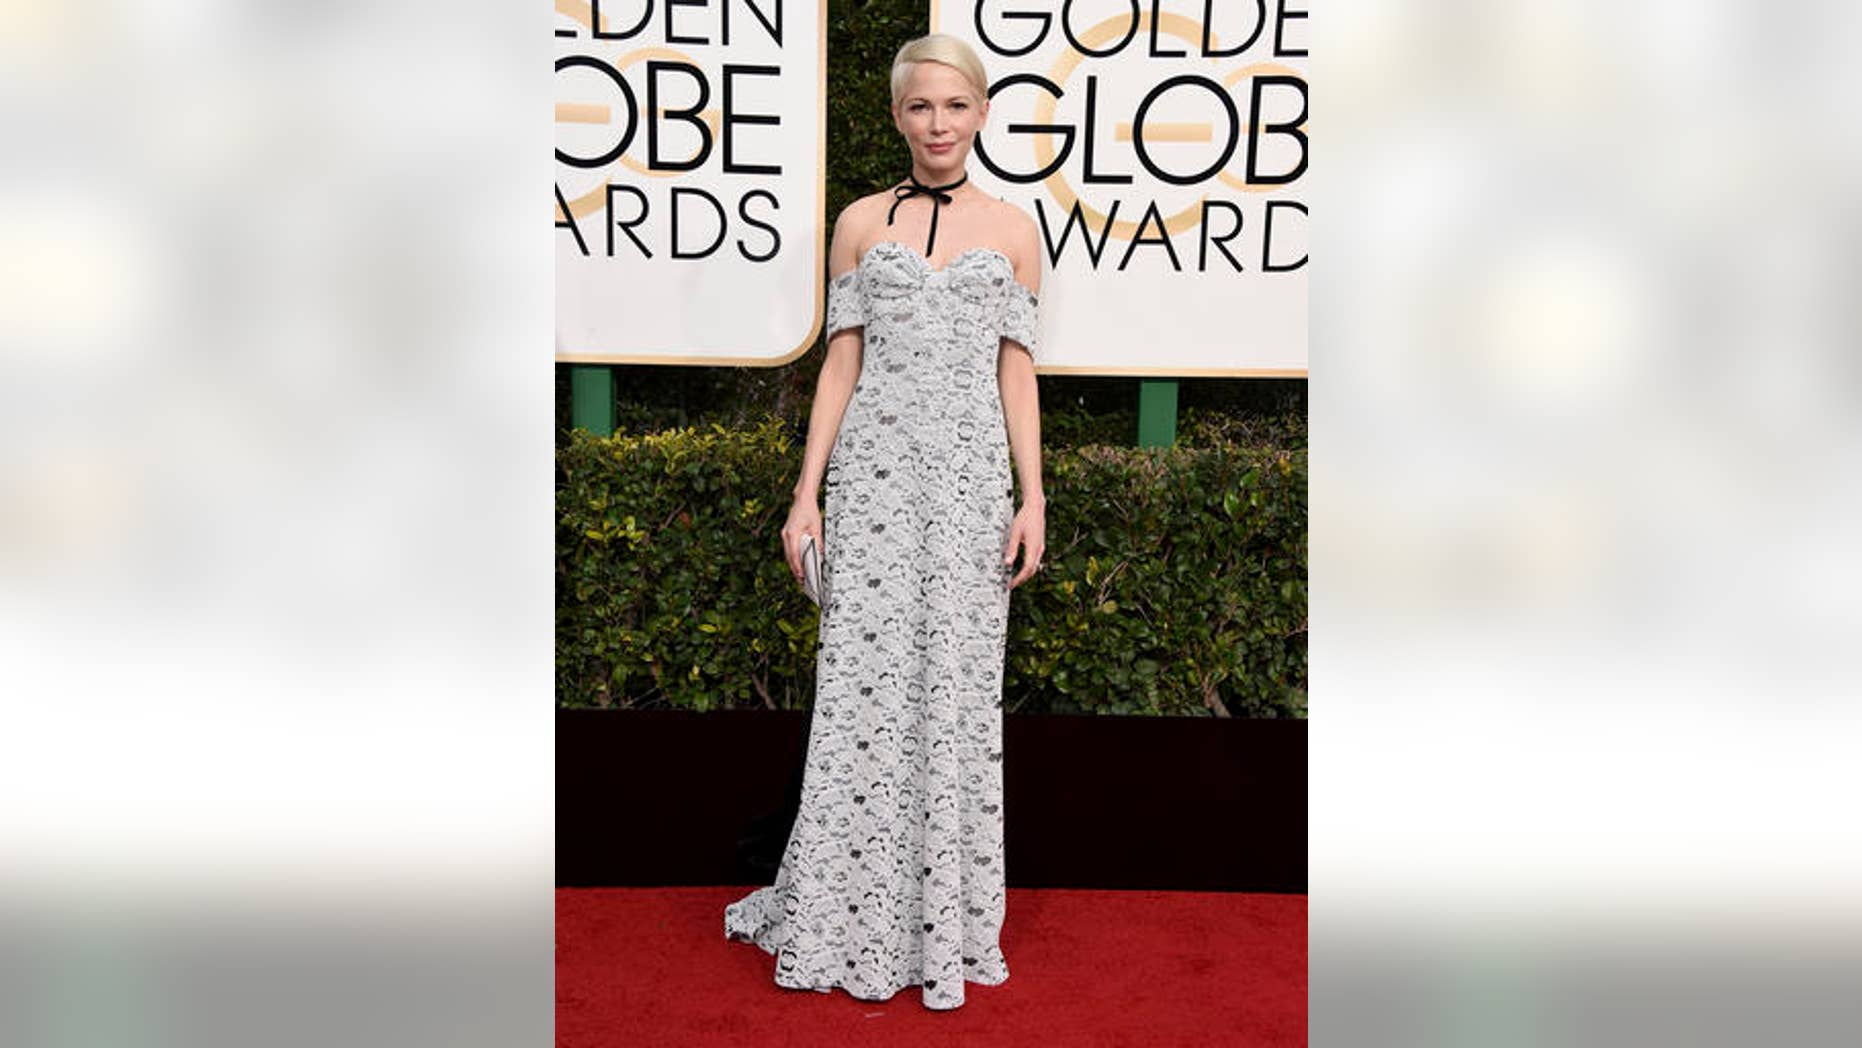 Michelle Williams usually stuns on the red carpet, but at tonight's Globes she missed the mark in this white crocheted number and black bow choker.